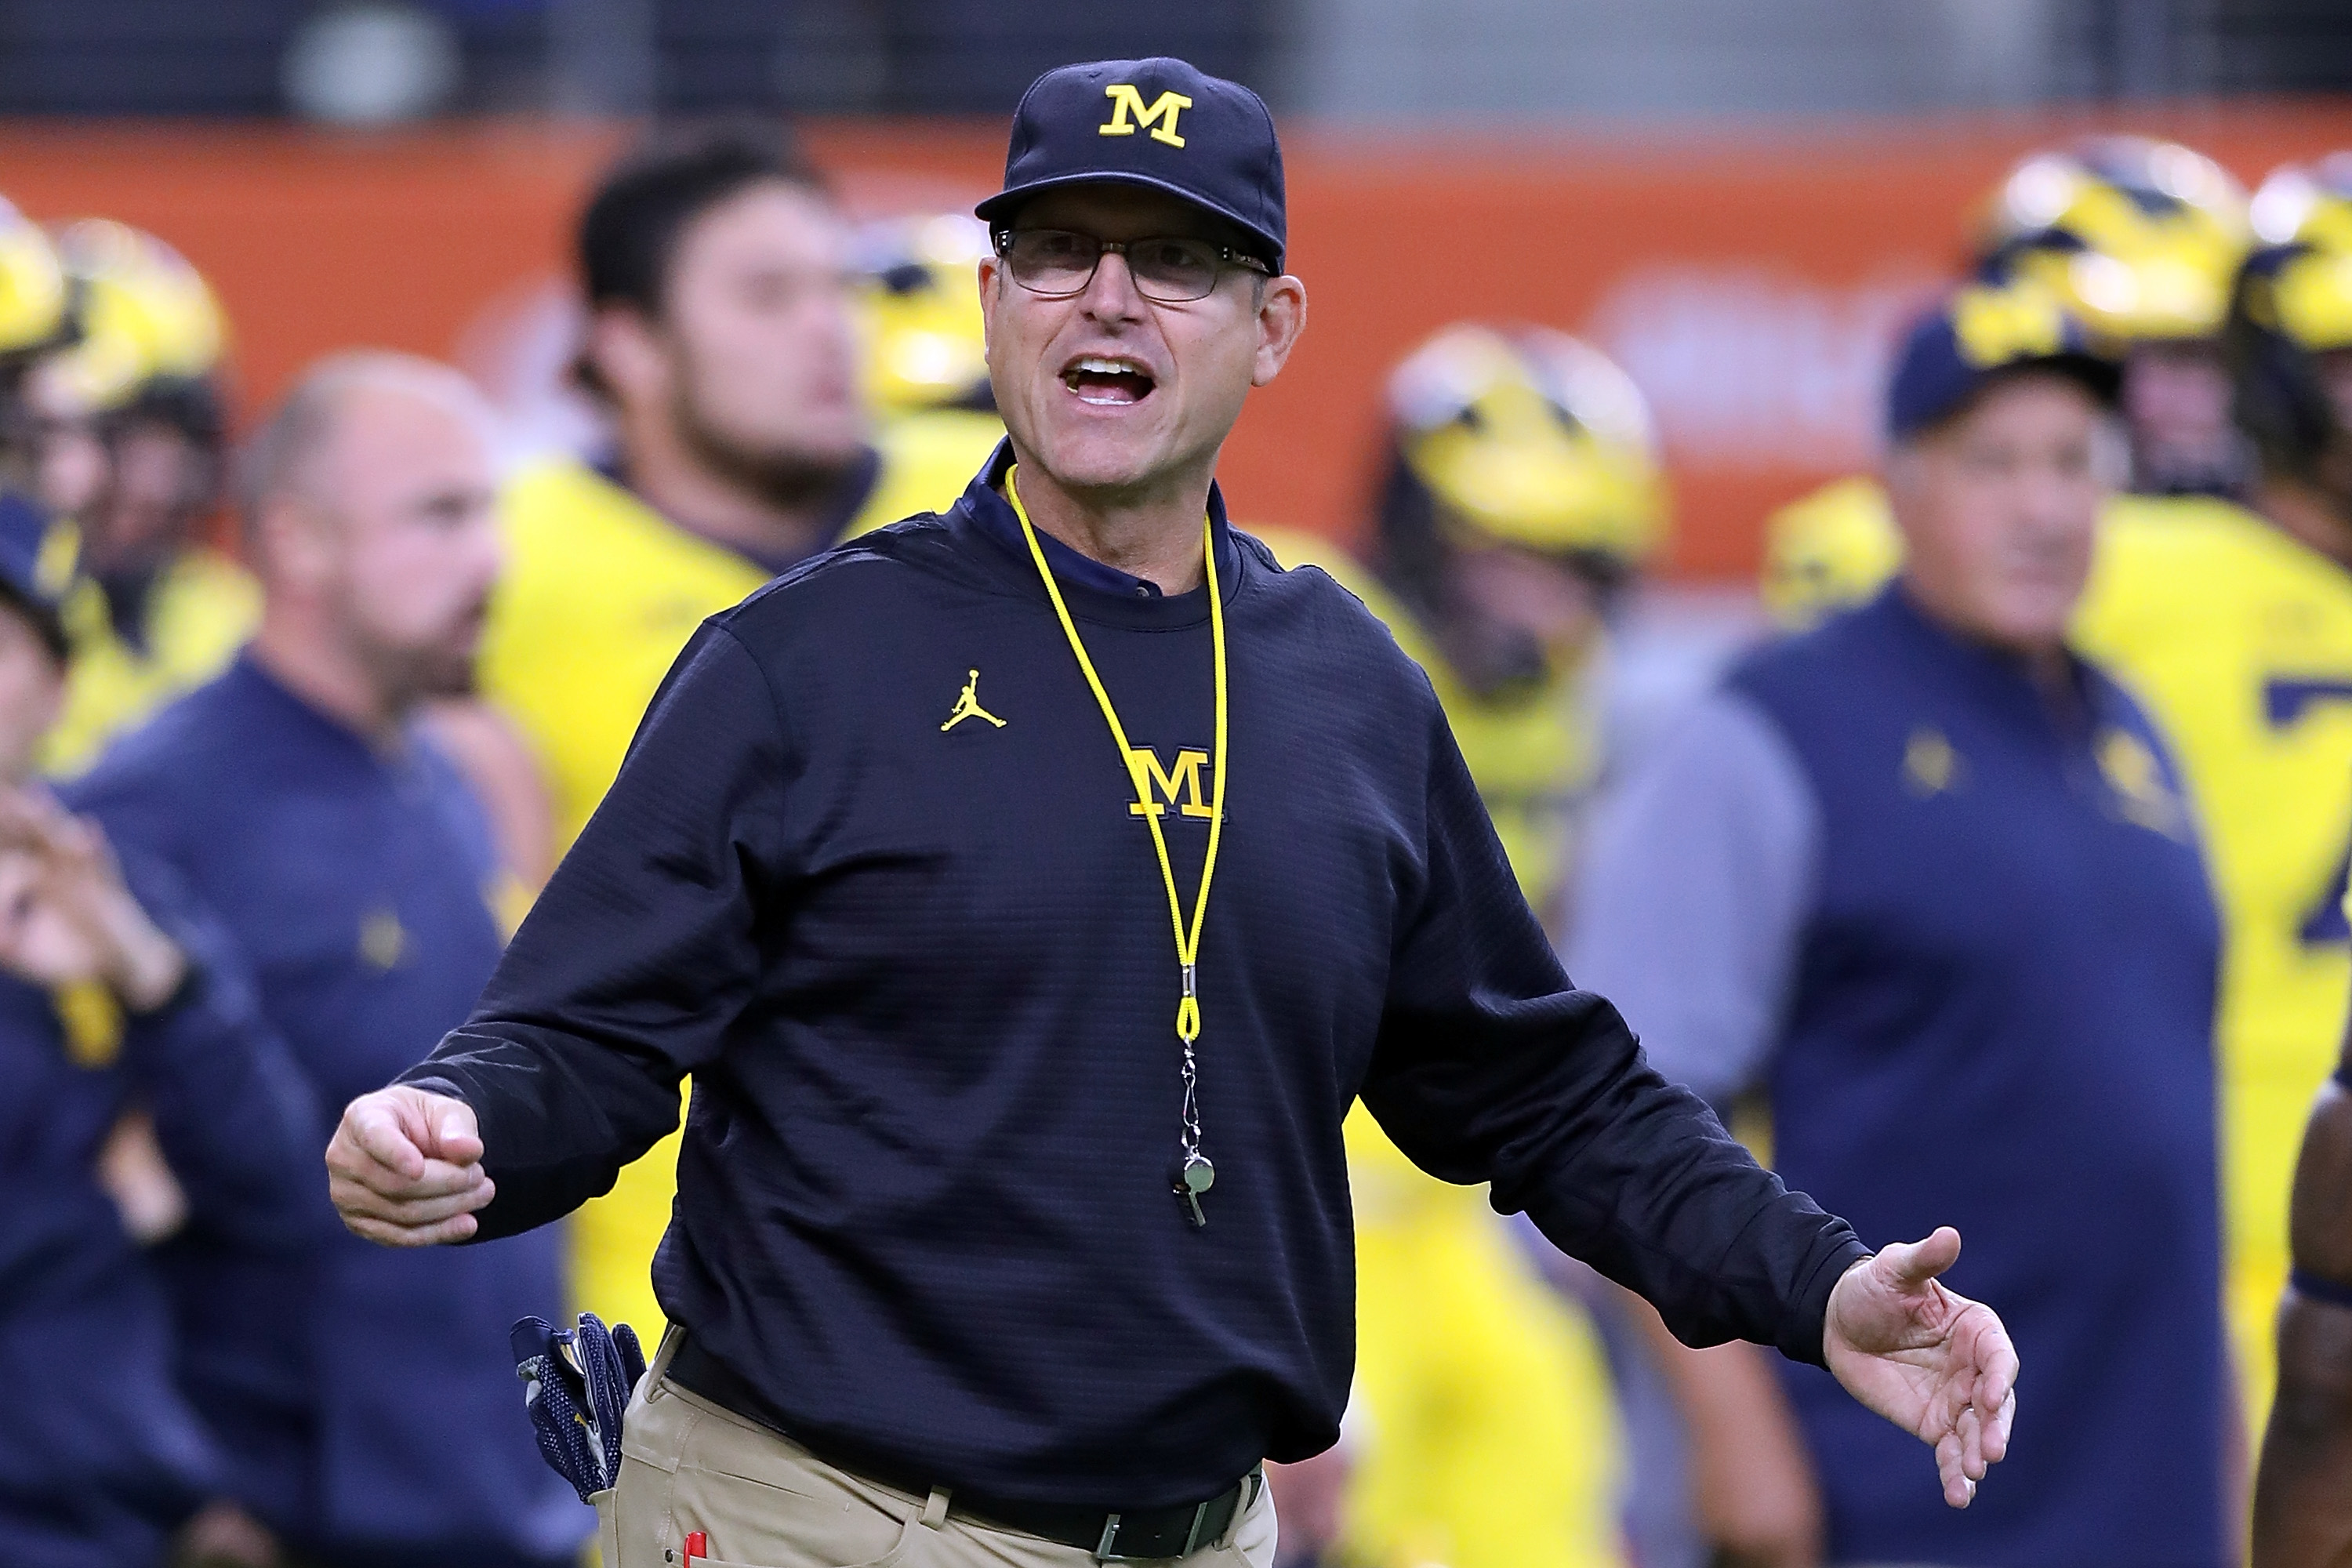 Michigan Survives vs. IN  in 27-20 Overtime Victory